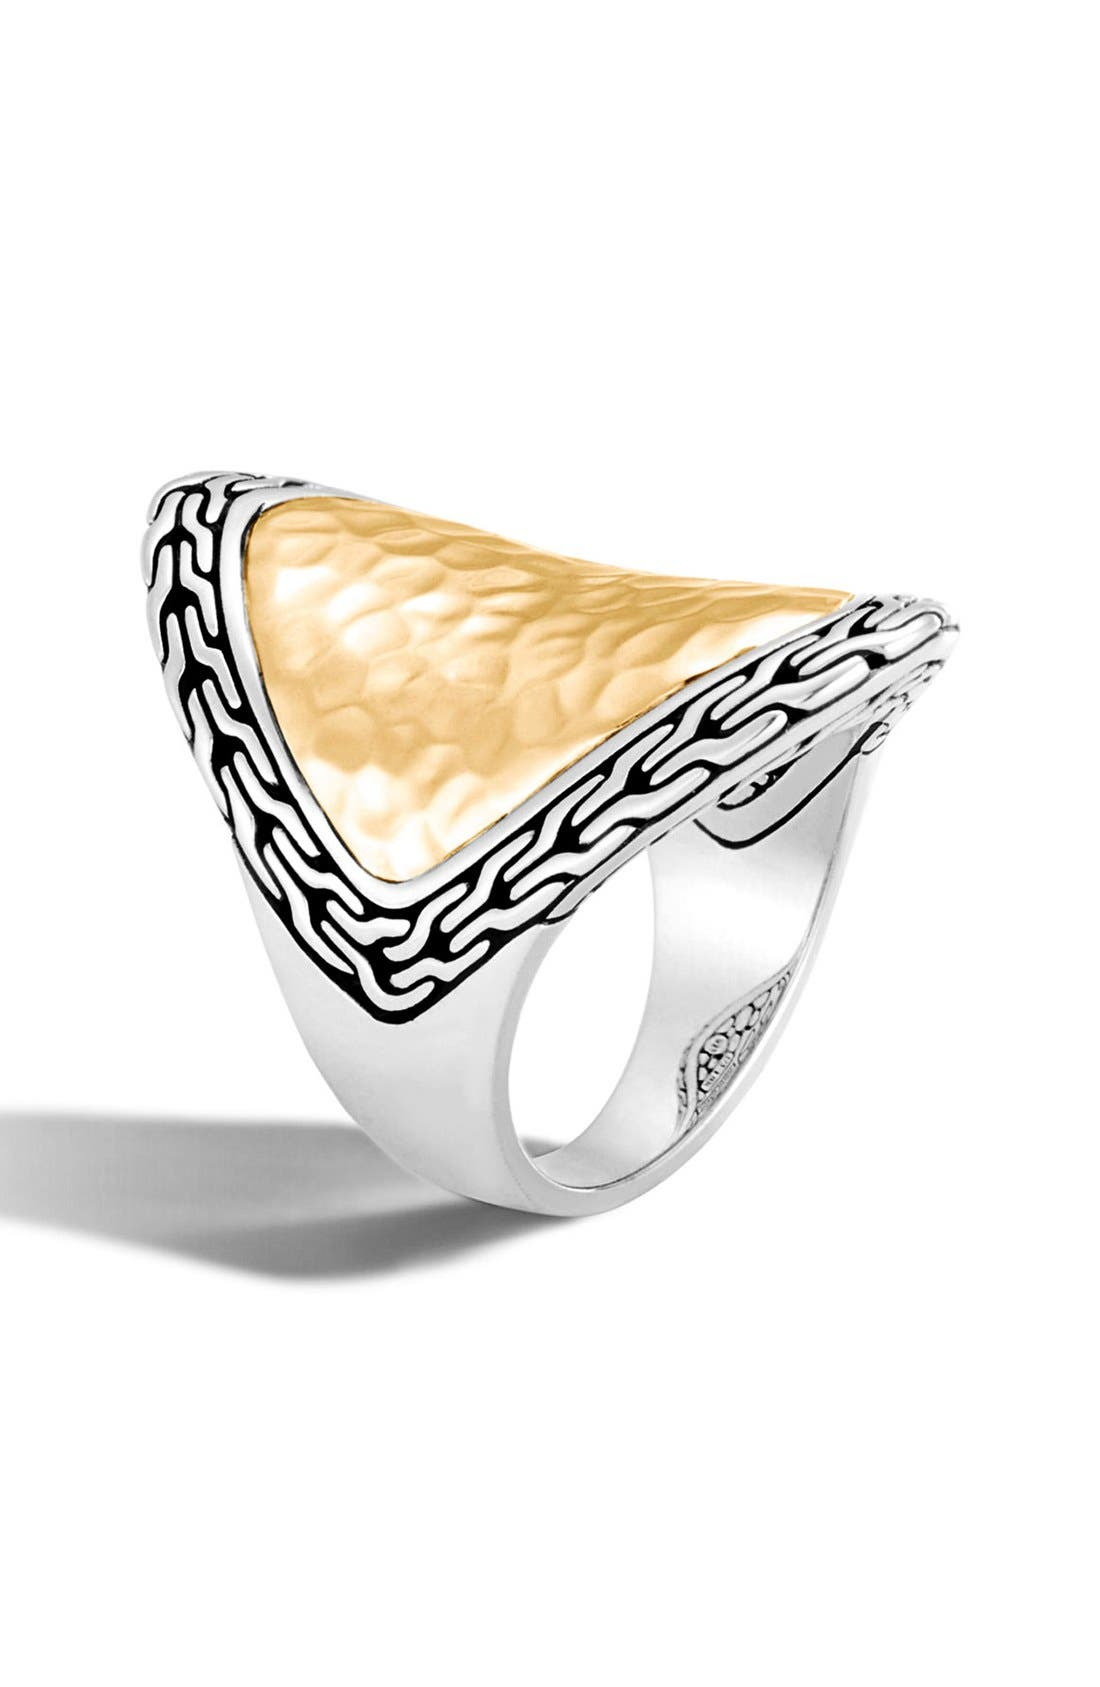 Heritage Marquise Ring,                         Main,                         color, Silver/ Gold